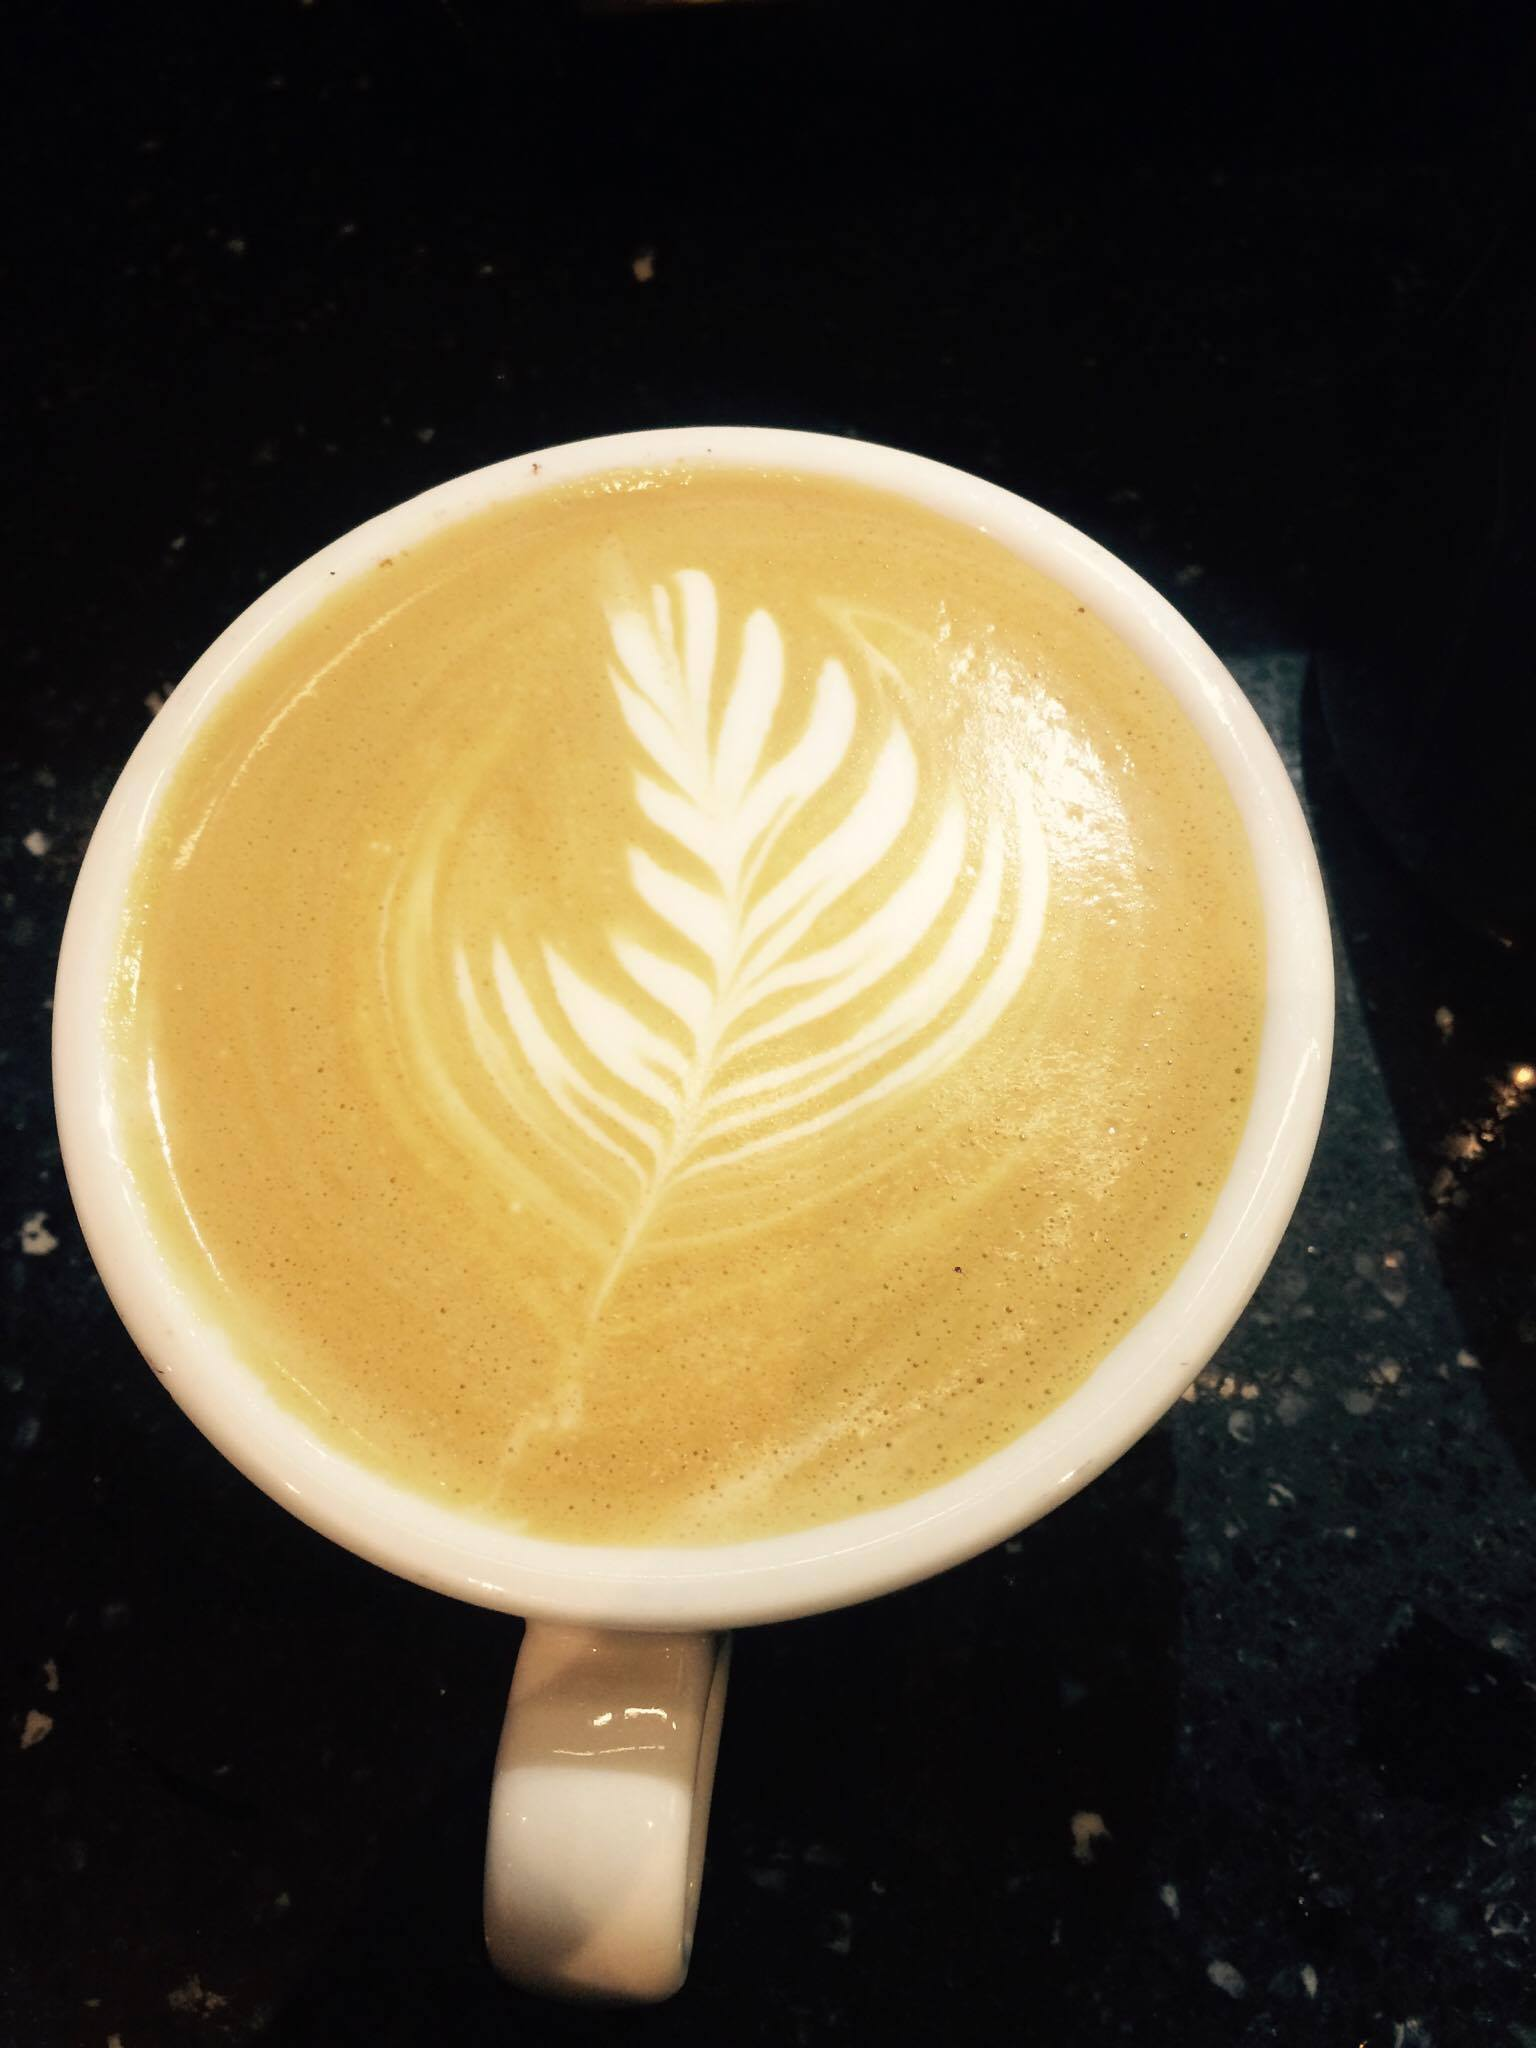 File:Latte art in the style of a feather jpg - Wikipedia